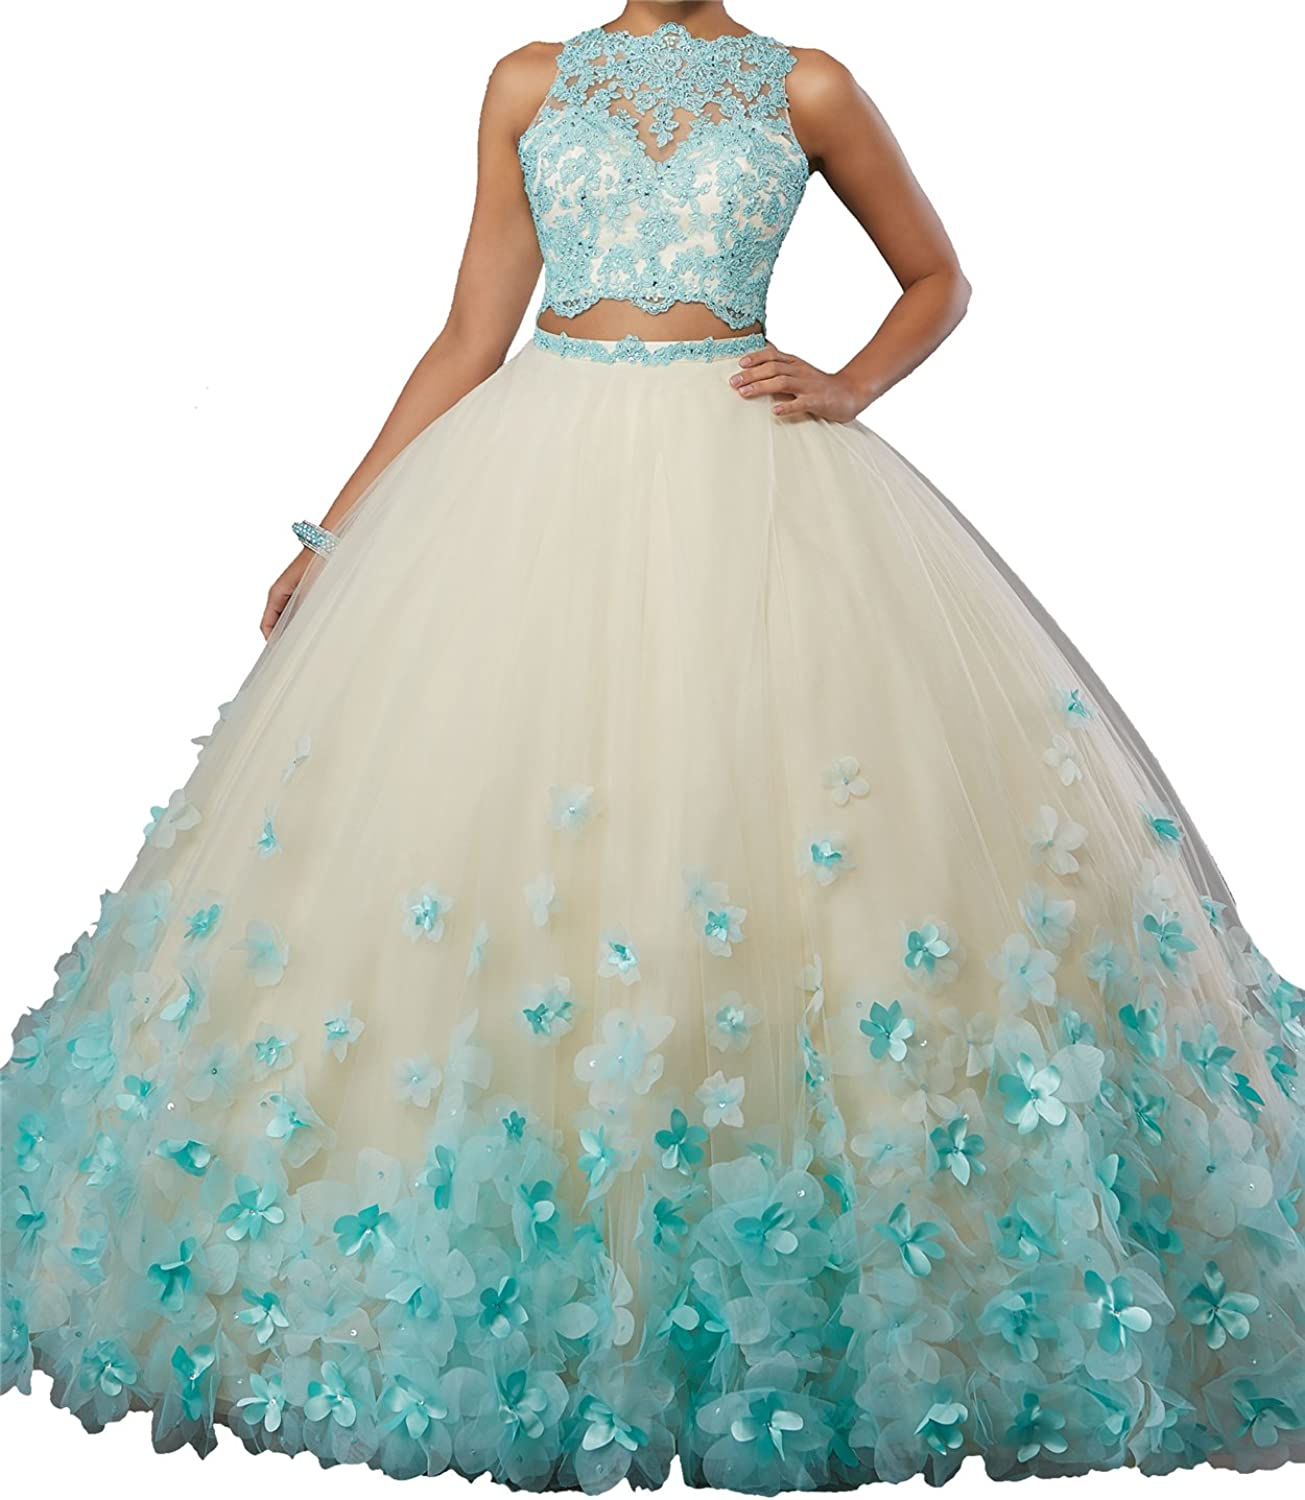 Yang Sweet Girls 16 Two Pieces Ball Gowns Women Lace Quinceanera Dresses